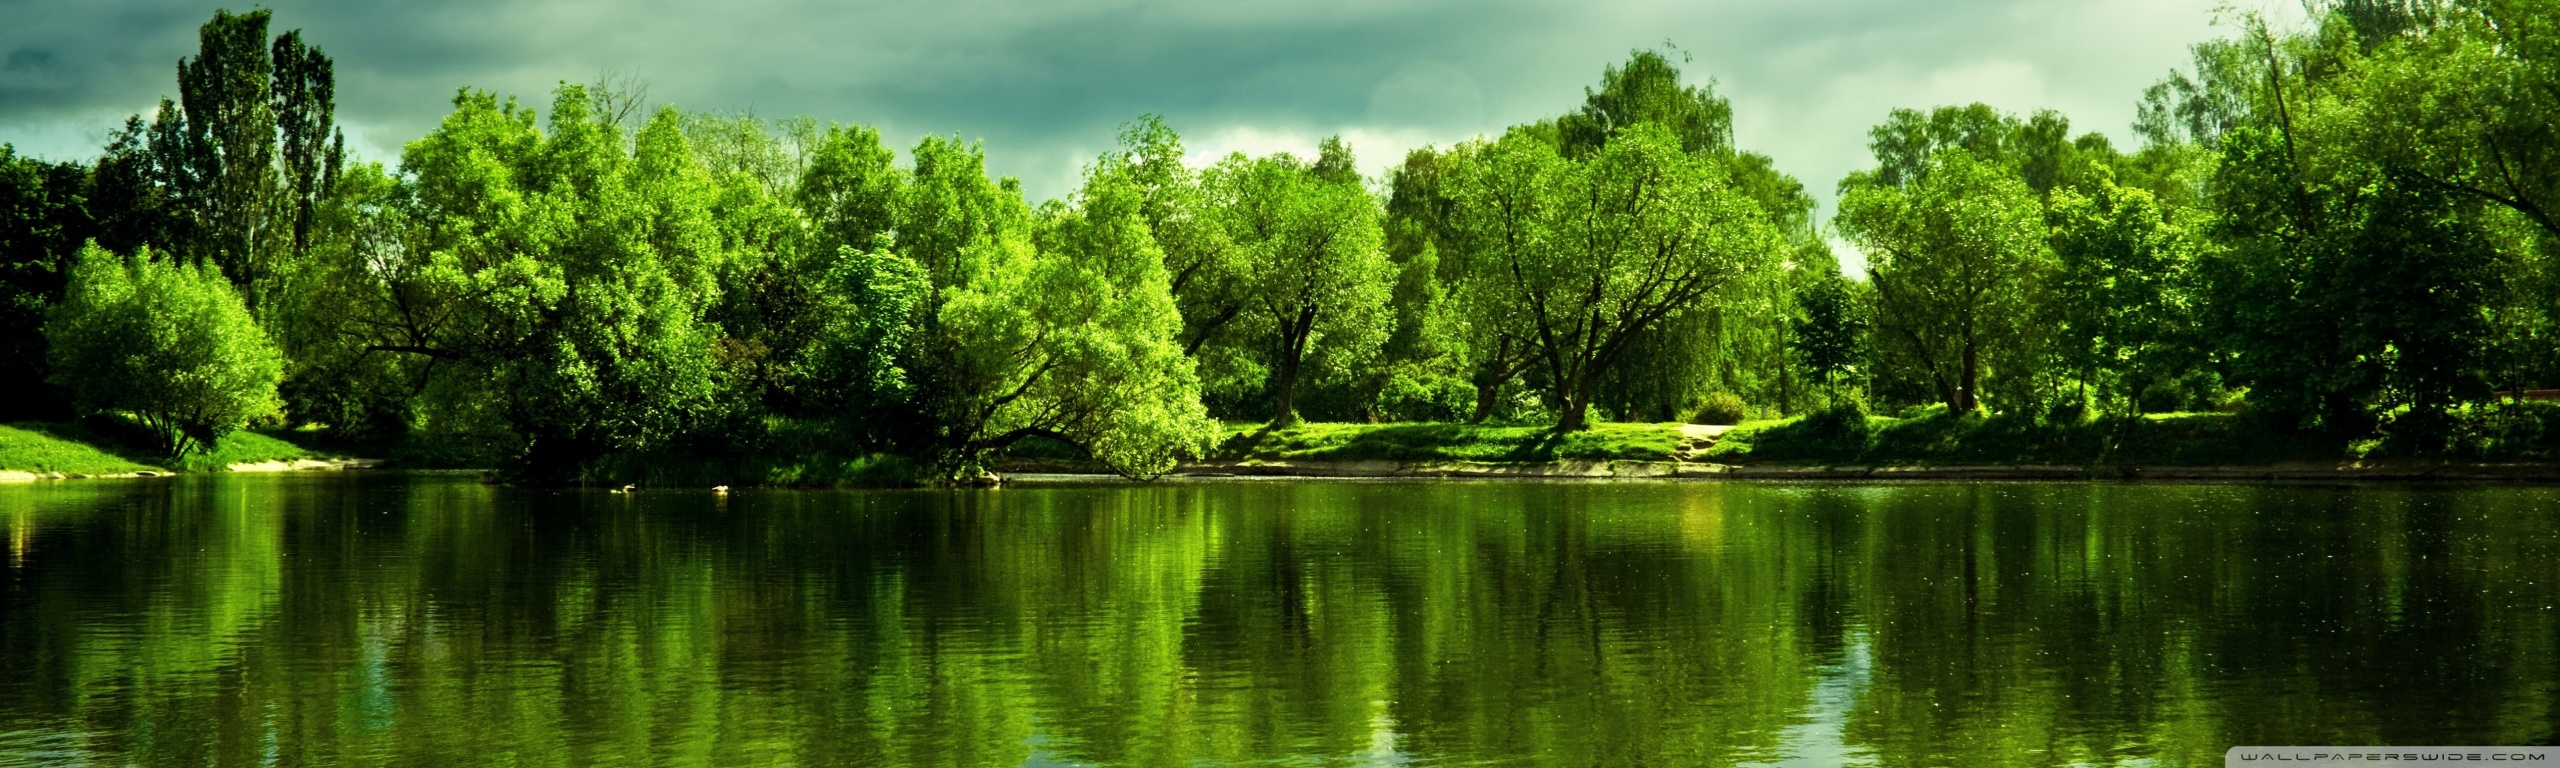 free photo green trees tree woods nature free download jooinn